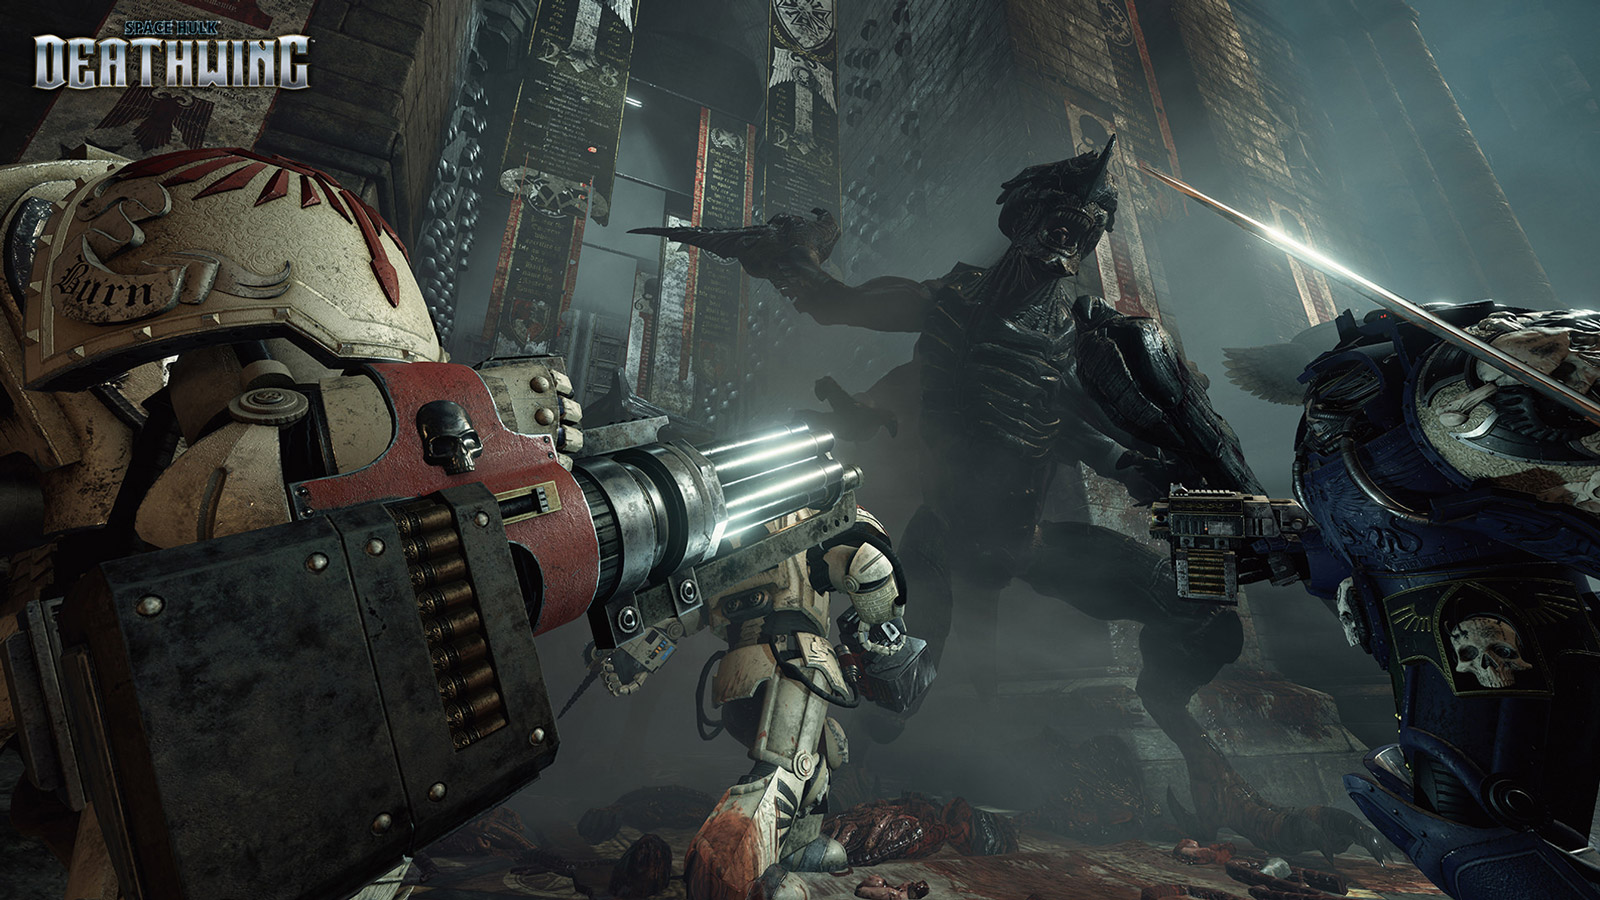 Free Space Hulk: Deathwing Wallpaper in 1600x900